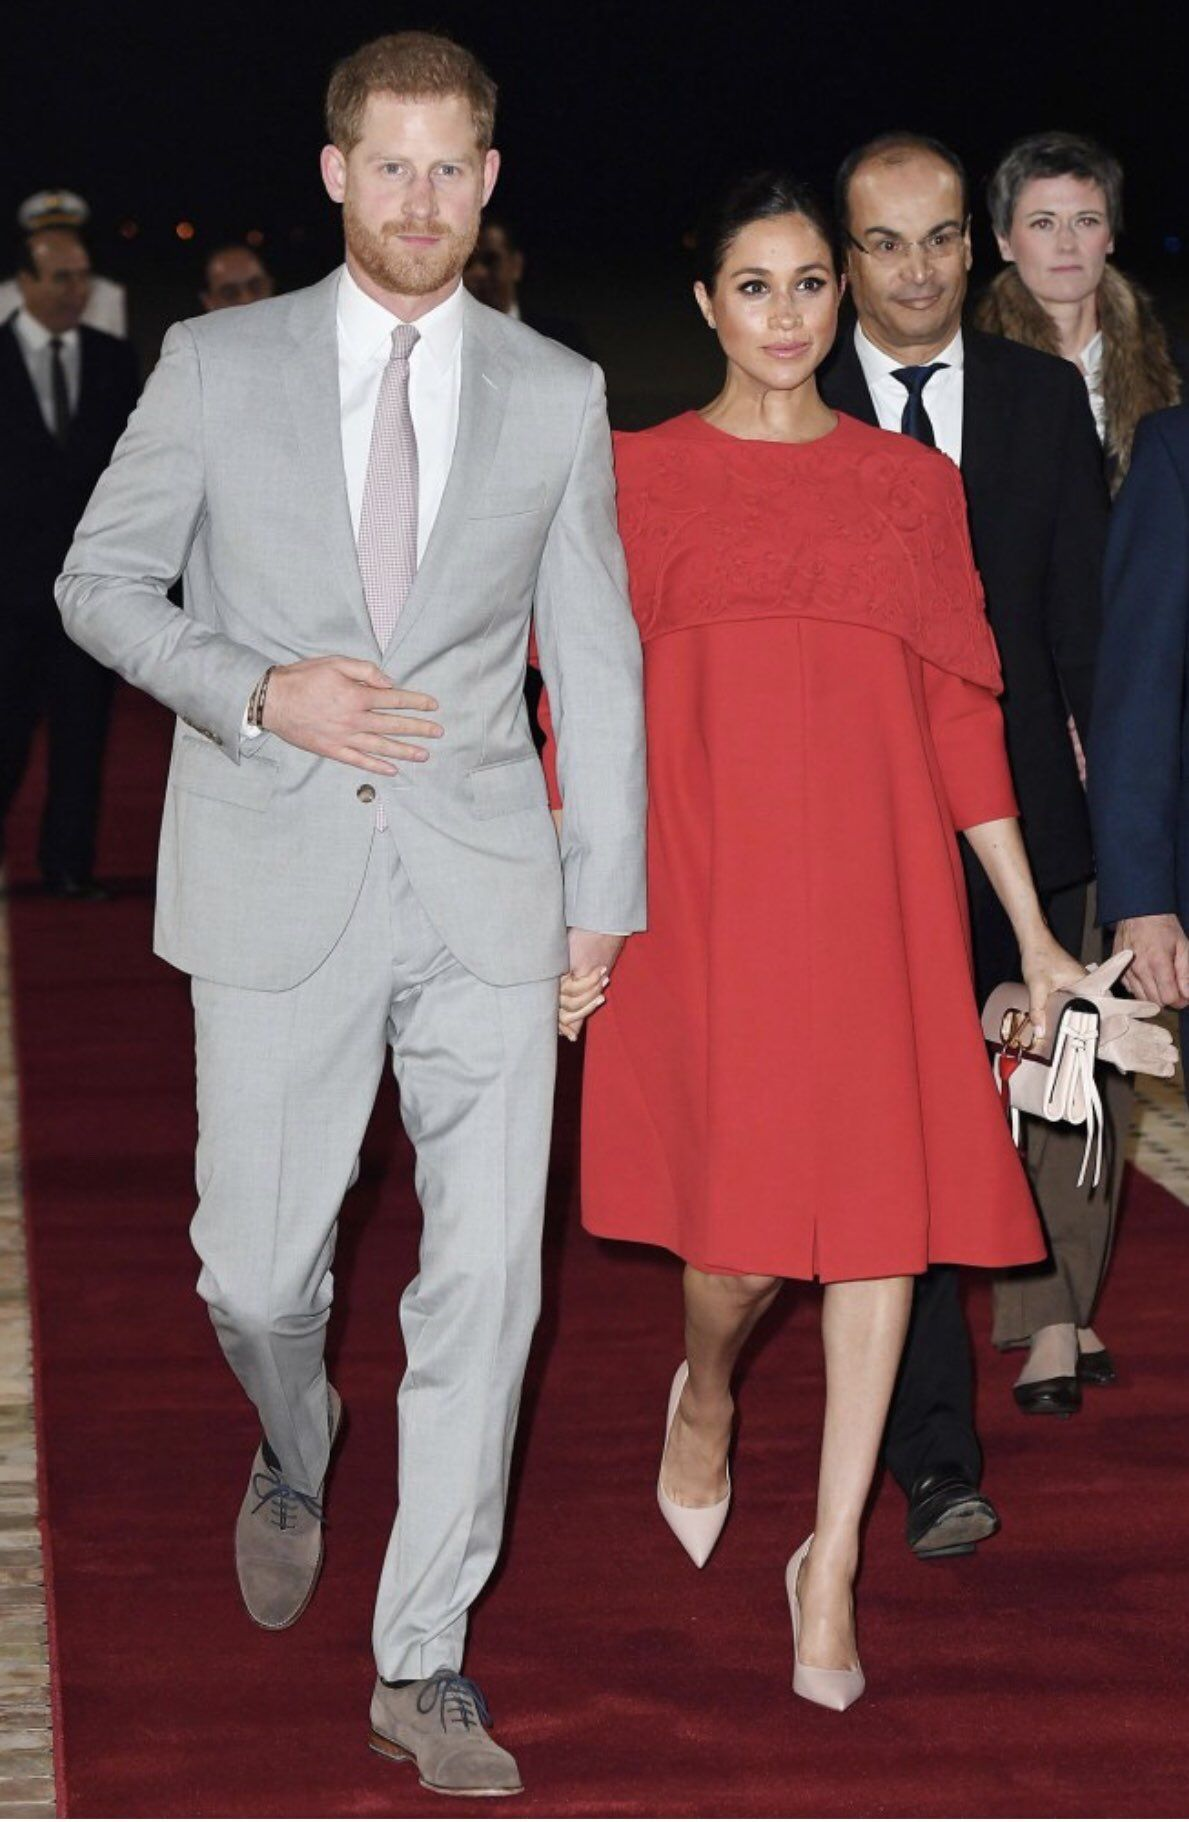 23 February 2019 Official Visit To Morocco Day 1 Casablanca Welcome Ceremony Dress By Valentino Clutch By Cape Dress Red Valentino Dress Prince Harry